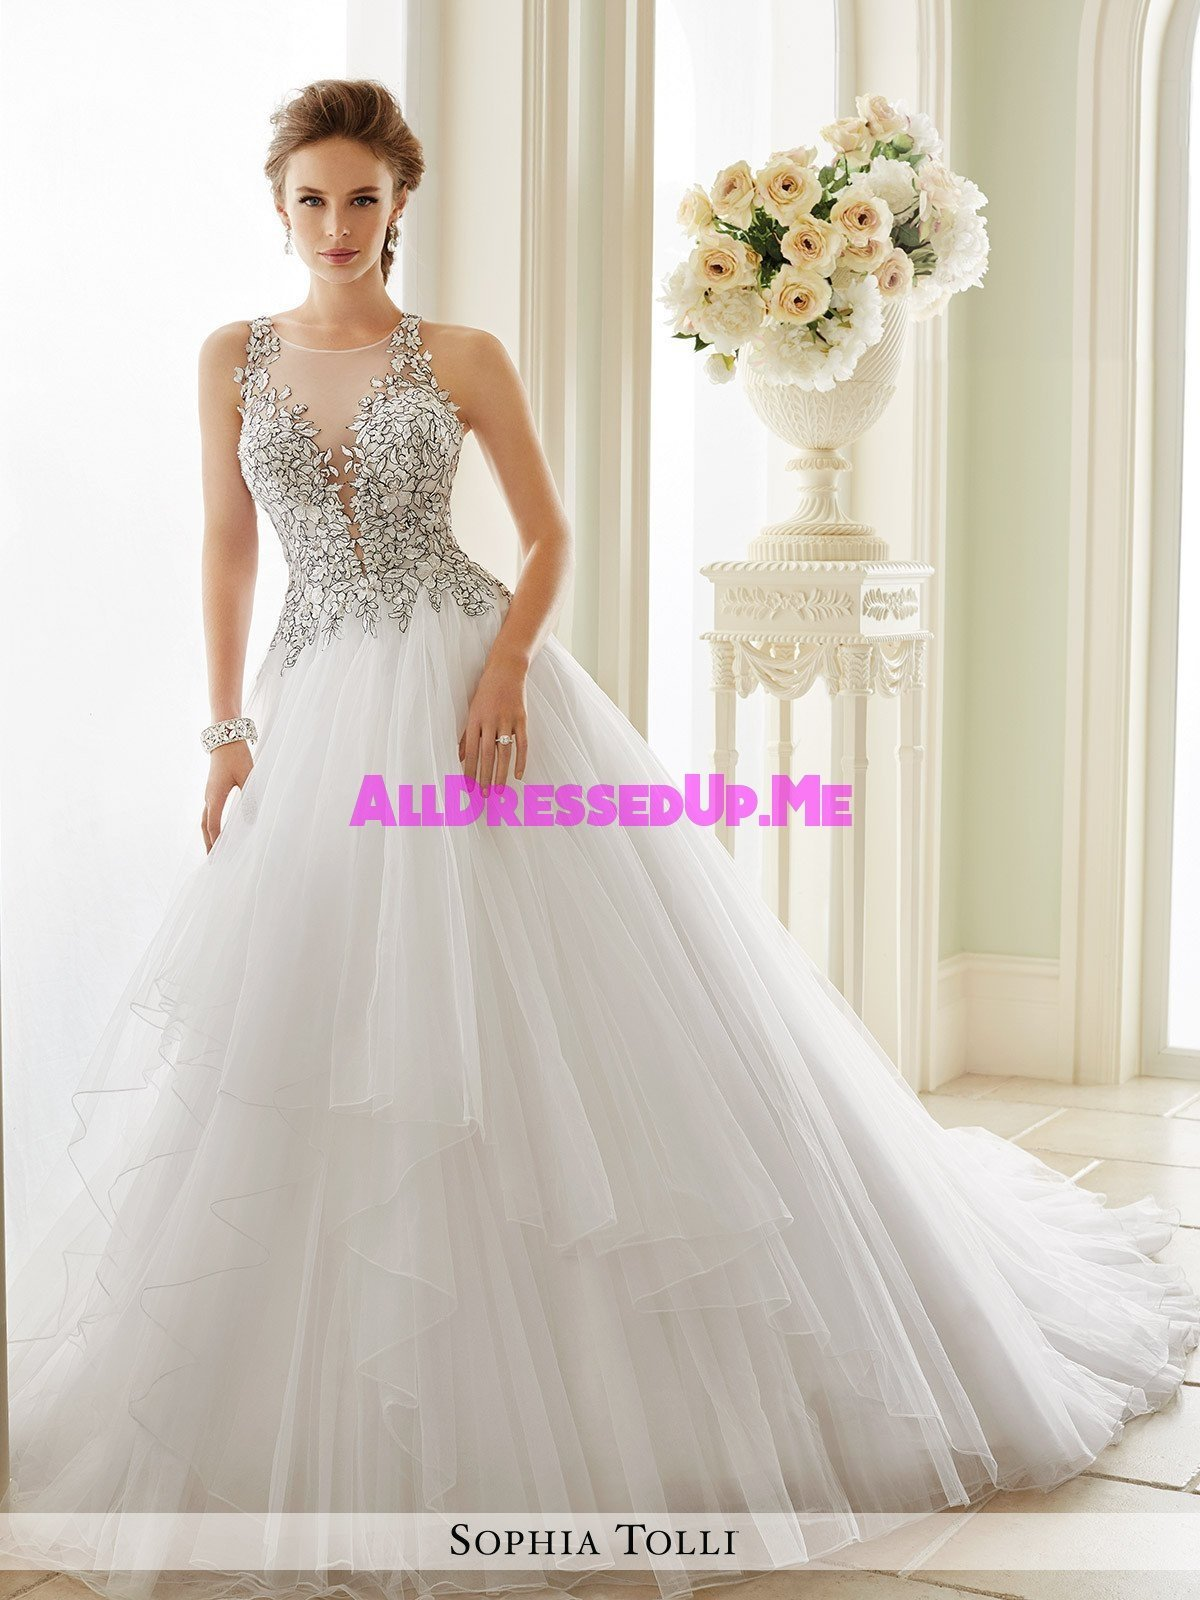 Sophia tolli dolce vita y21655 all dressed up bridal for Wedding dresses chattanooga tn